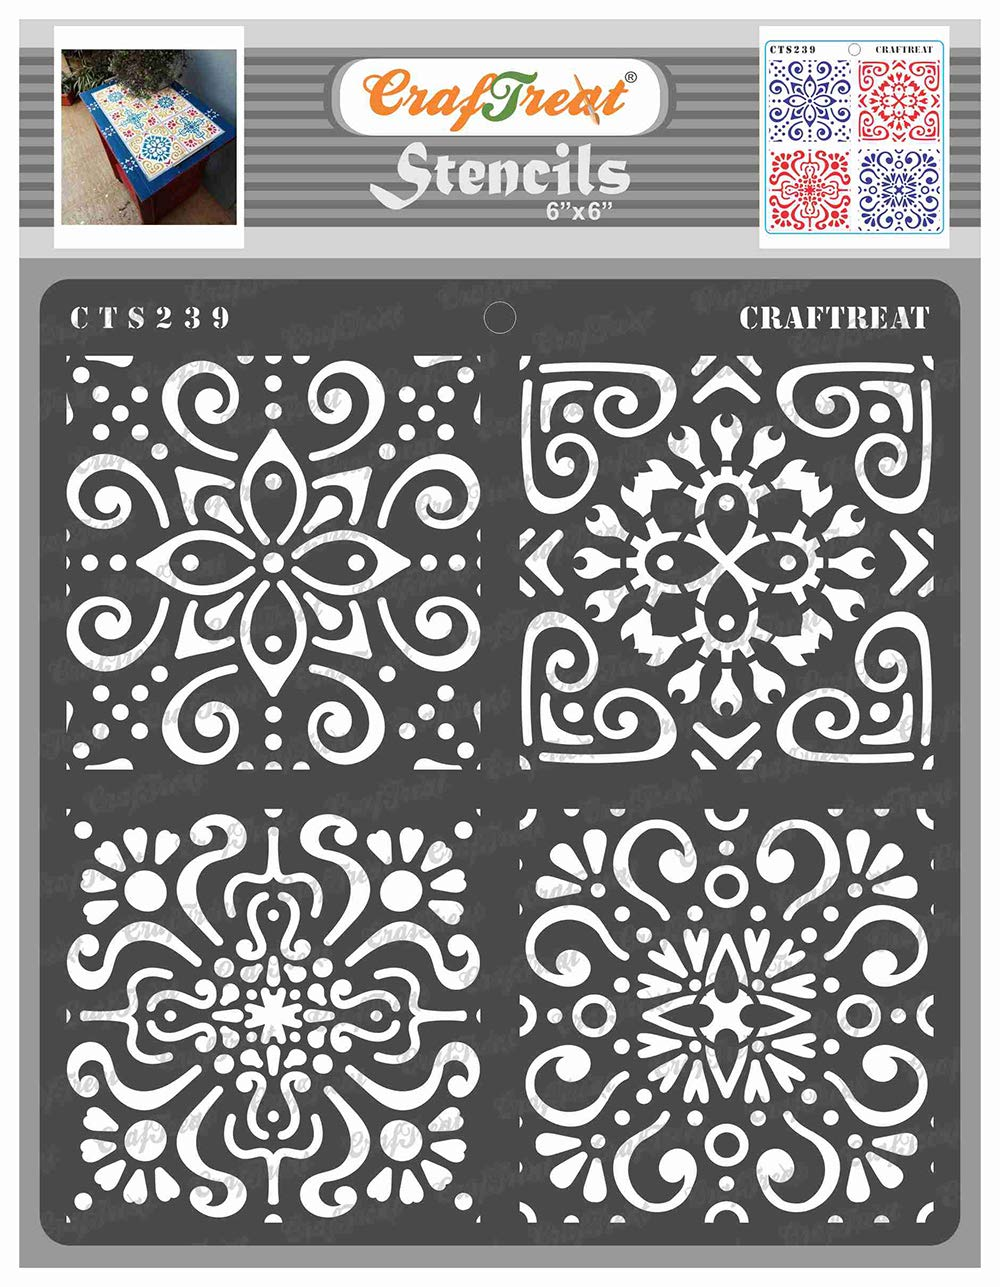 CrafTreat Moroccan Stencils for Painting on Wood, Wall, Tile, Canvas, Paper and Floor - Moroccan Tiles Stencil - 12x12 Inches - Reusable DIY Art and Craft Stencils - Moroccan Tile Wall Decor